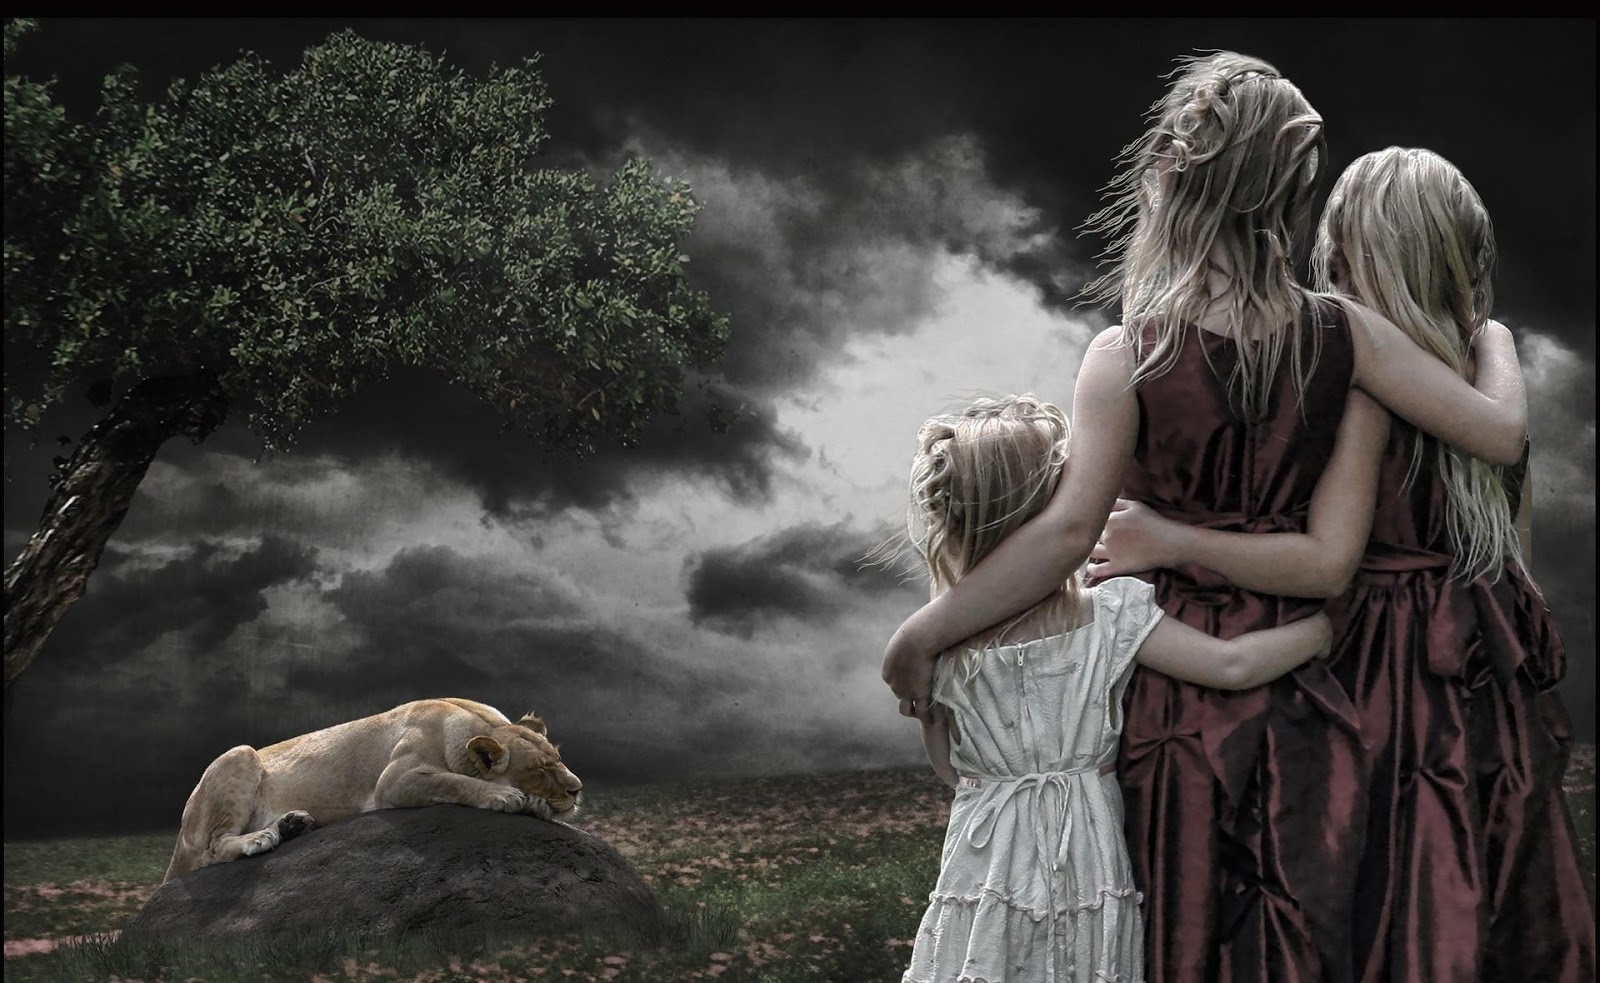 http://4.bp.blogspot.com/-HvZBSsyG4pw/UQQxu0MfpvI/AAAAAAAACxA/OEn2j_QKIOo/s1600/wallpaper-young-girls-watching-a-lion.jpg